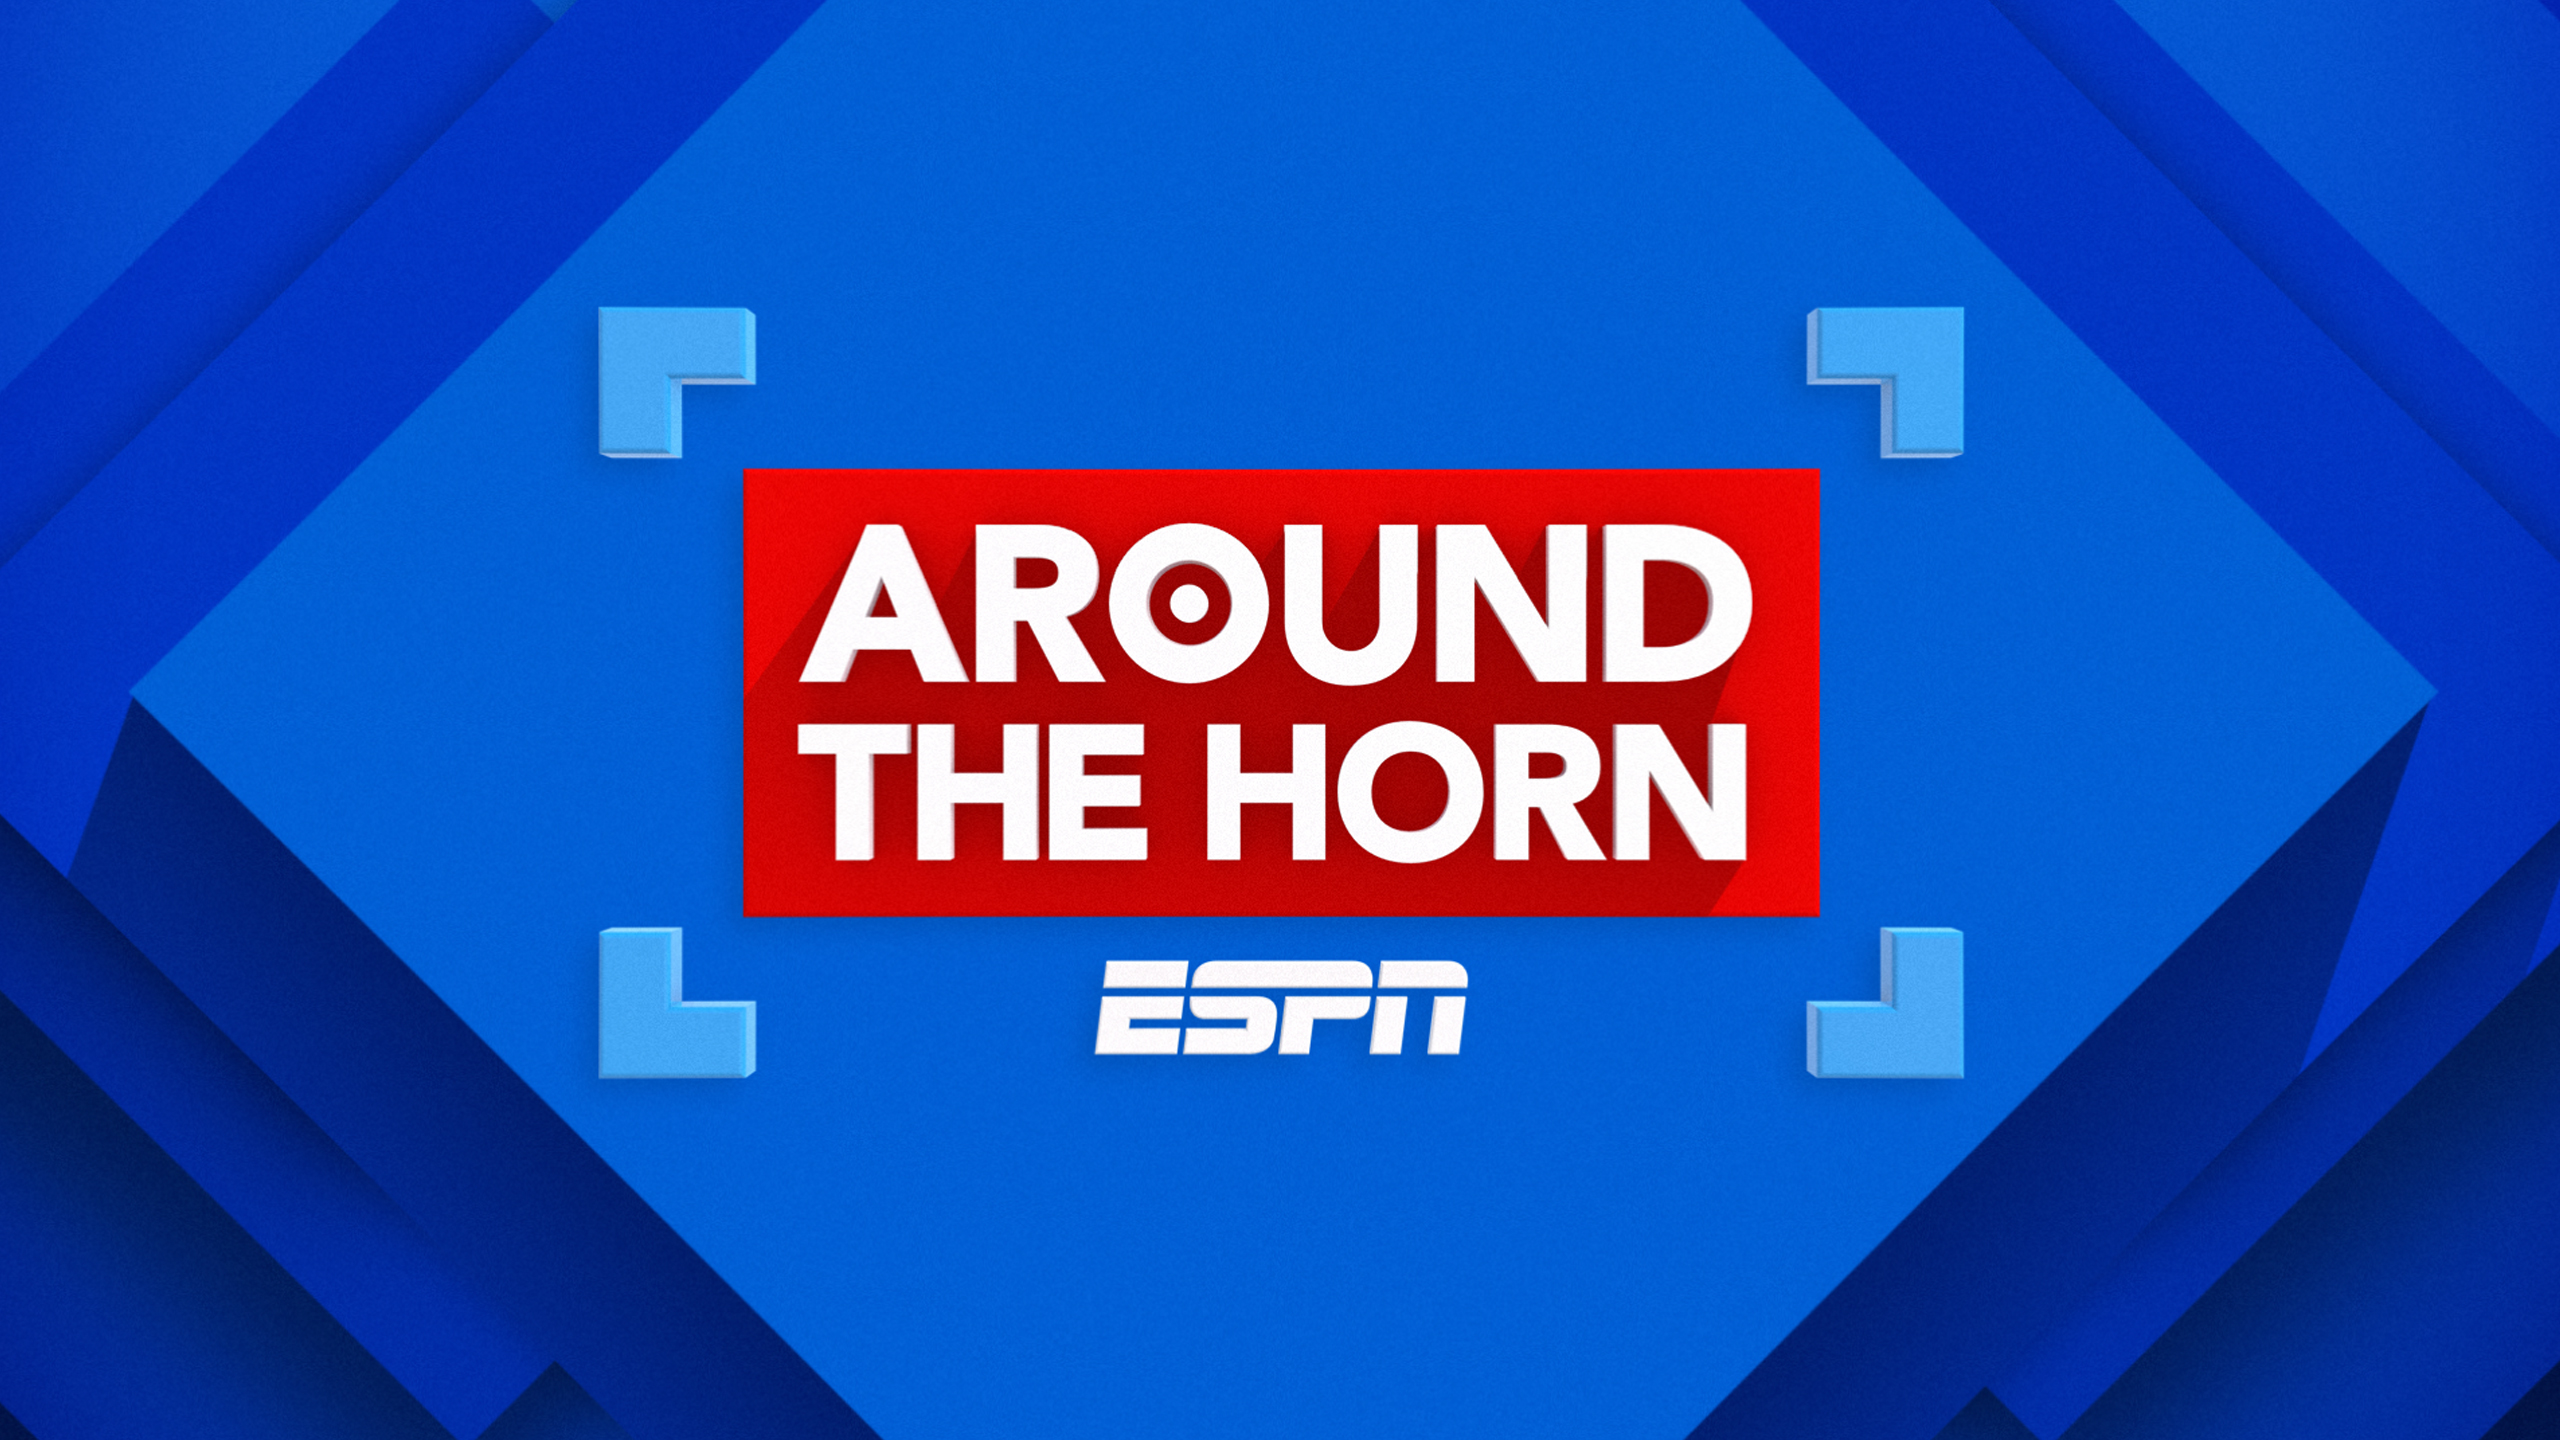 Thu, 1/17 - Around The Horn